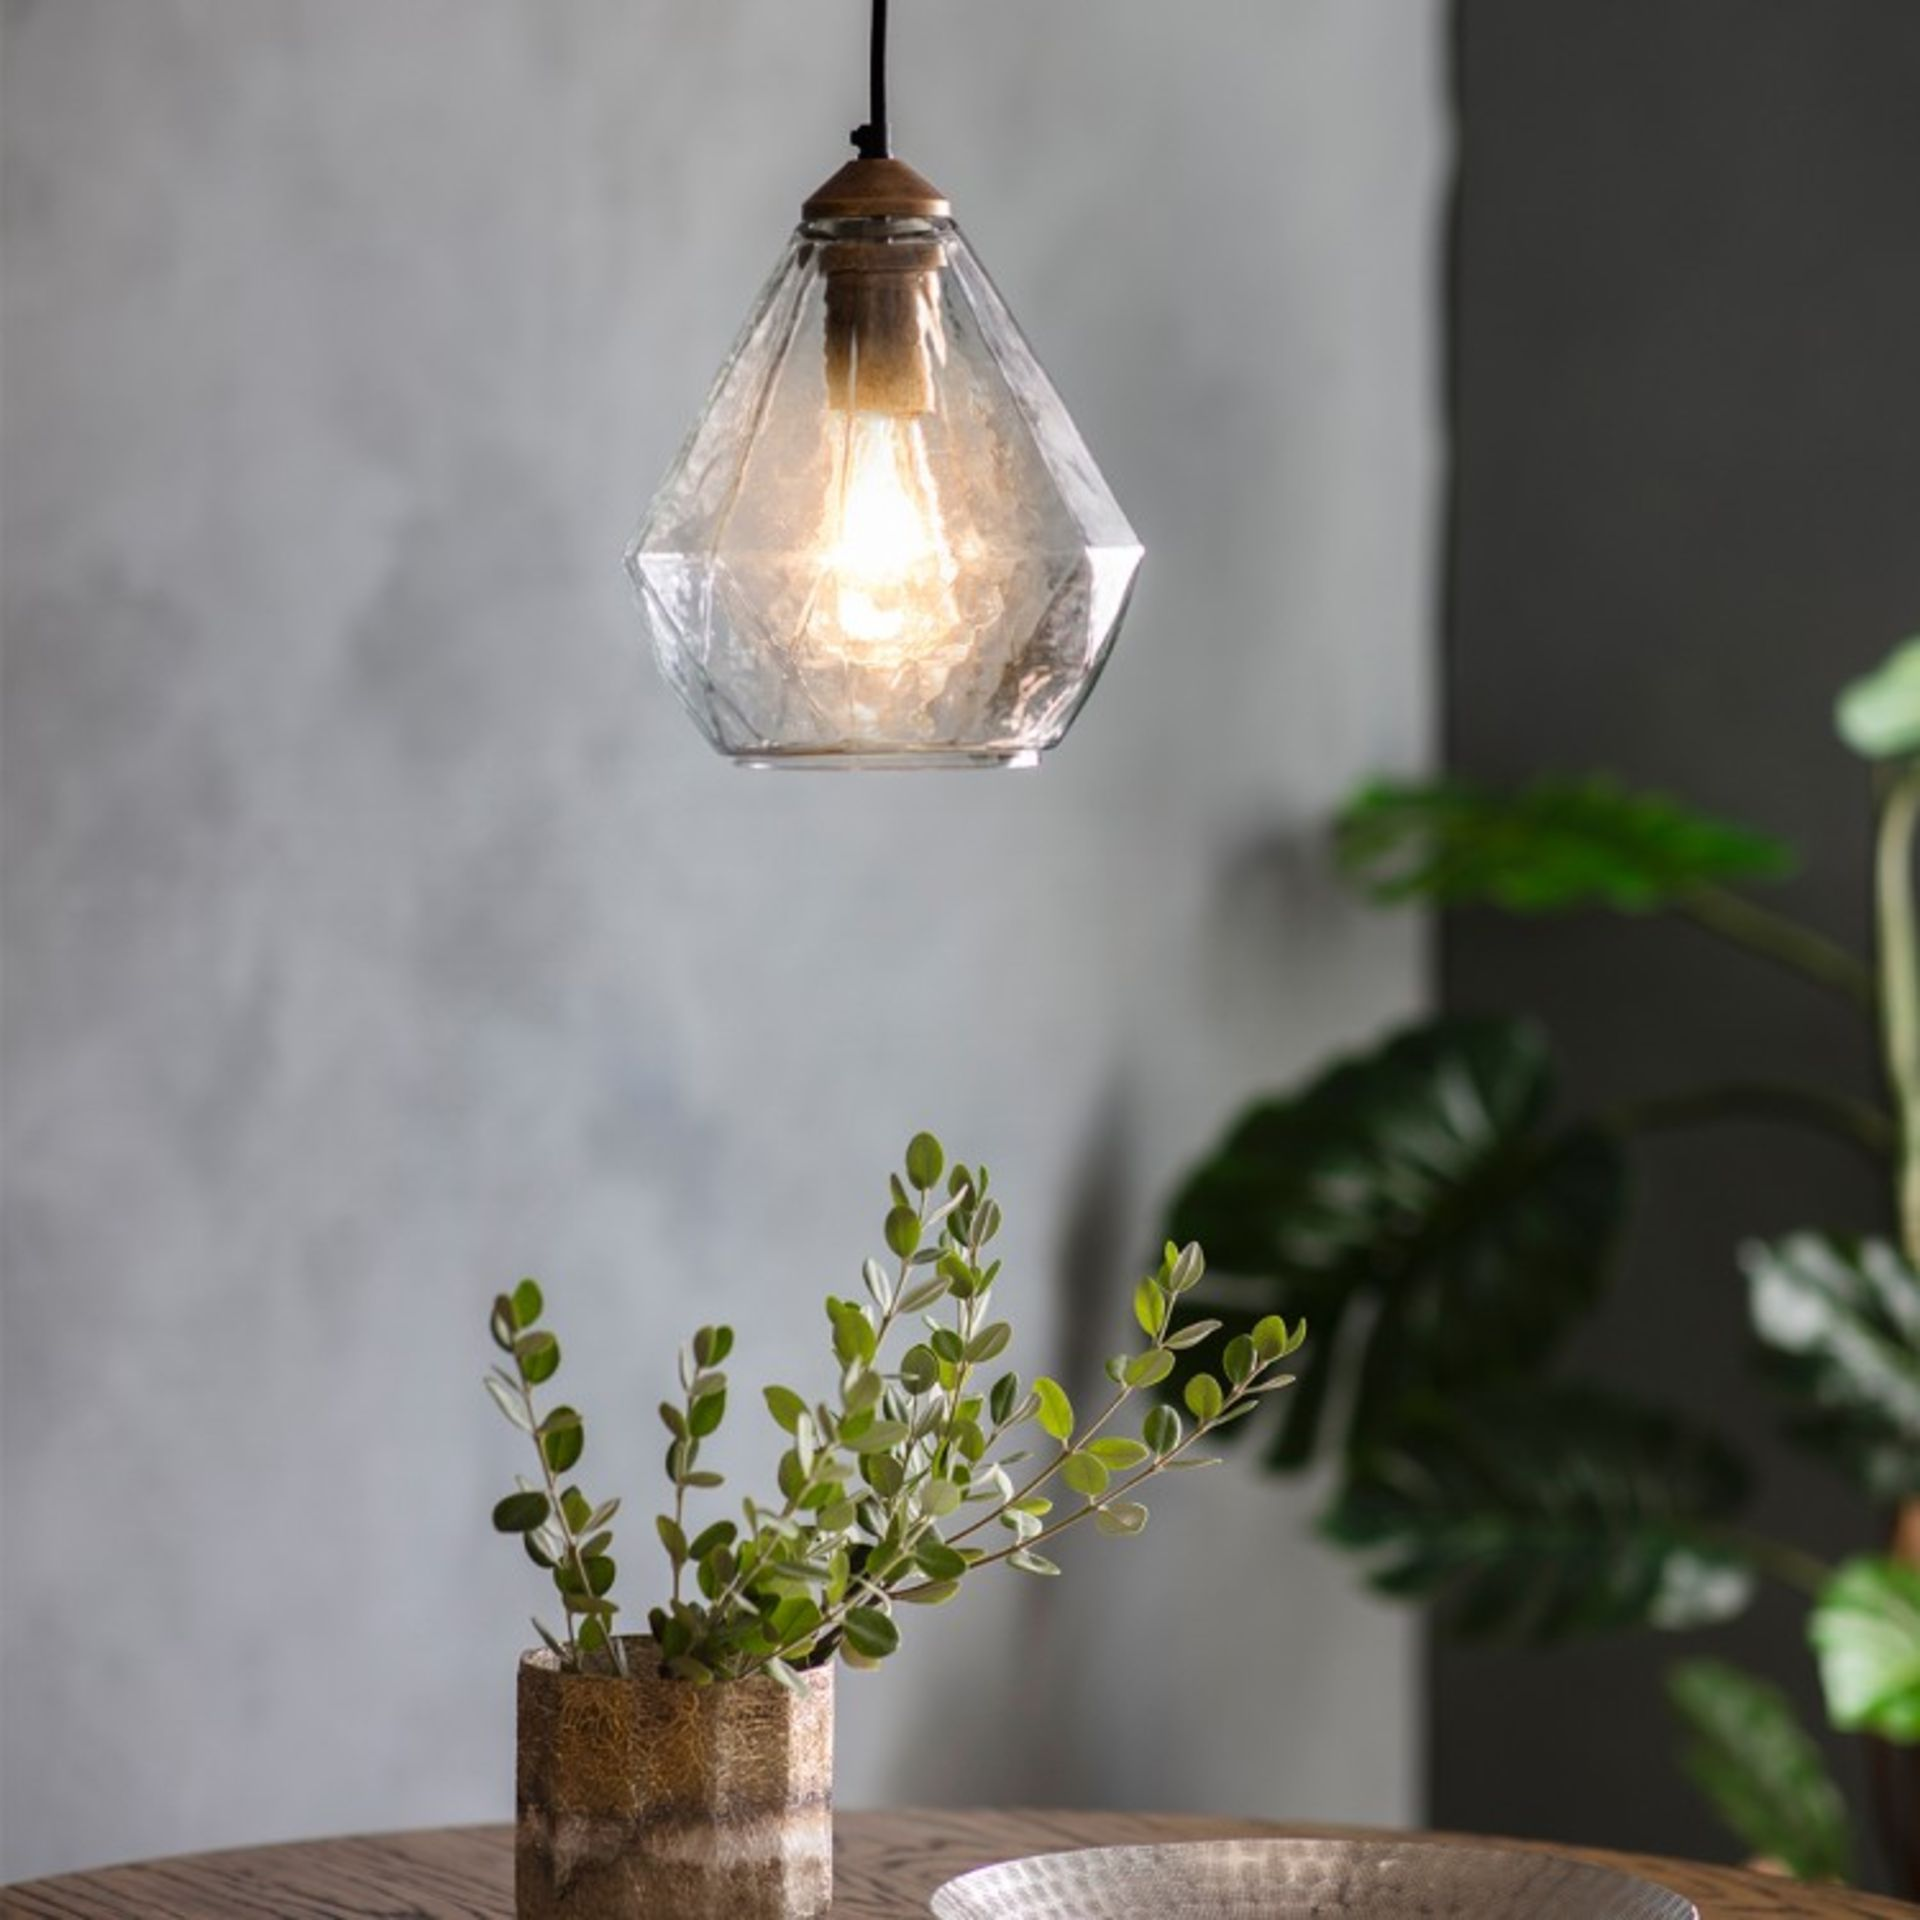 Pollina Pendant Light Contemporary and incredibly stylish, this pendant light will effortlessly